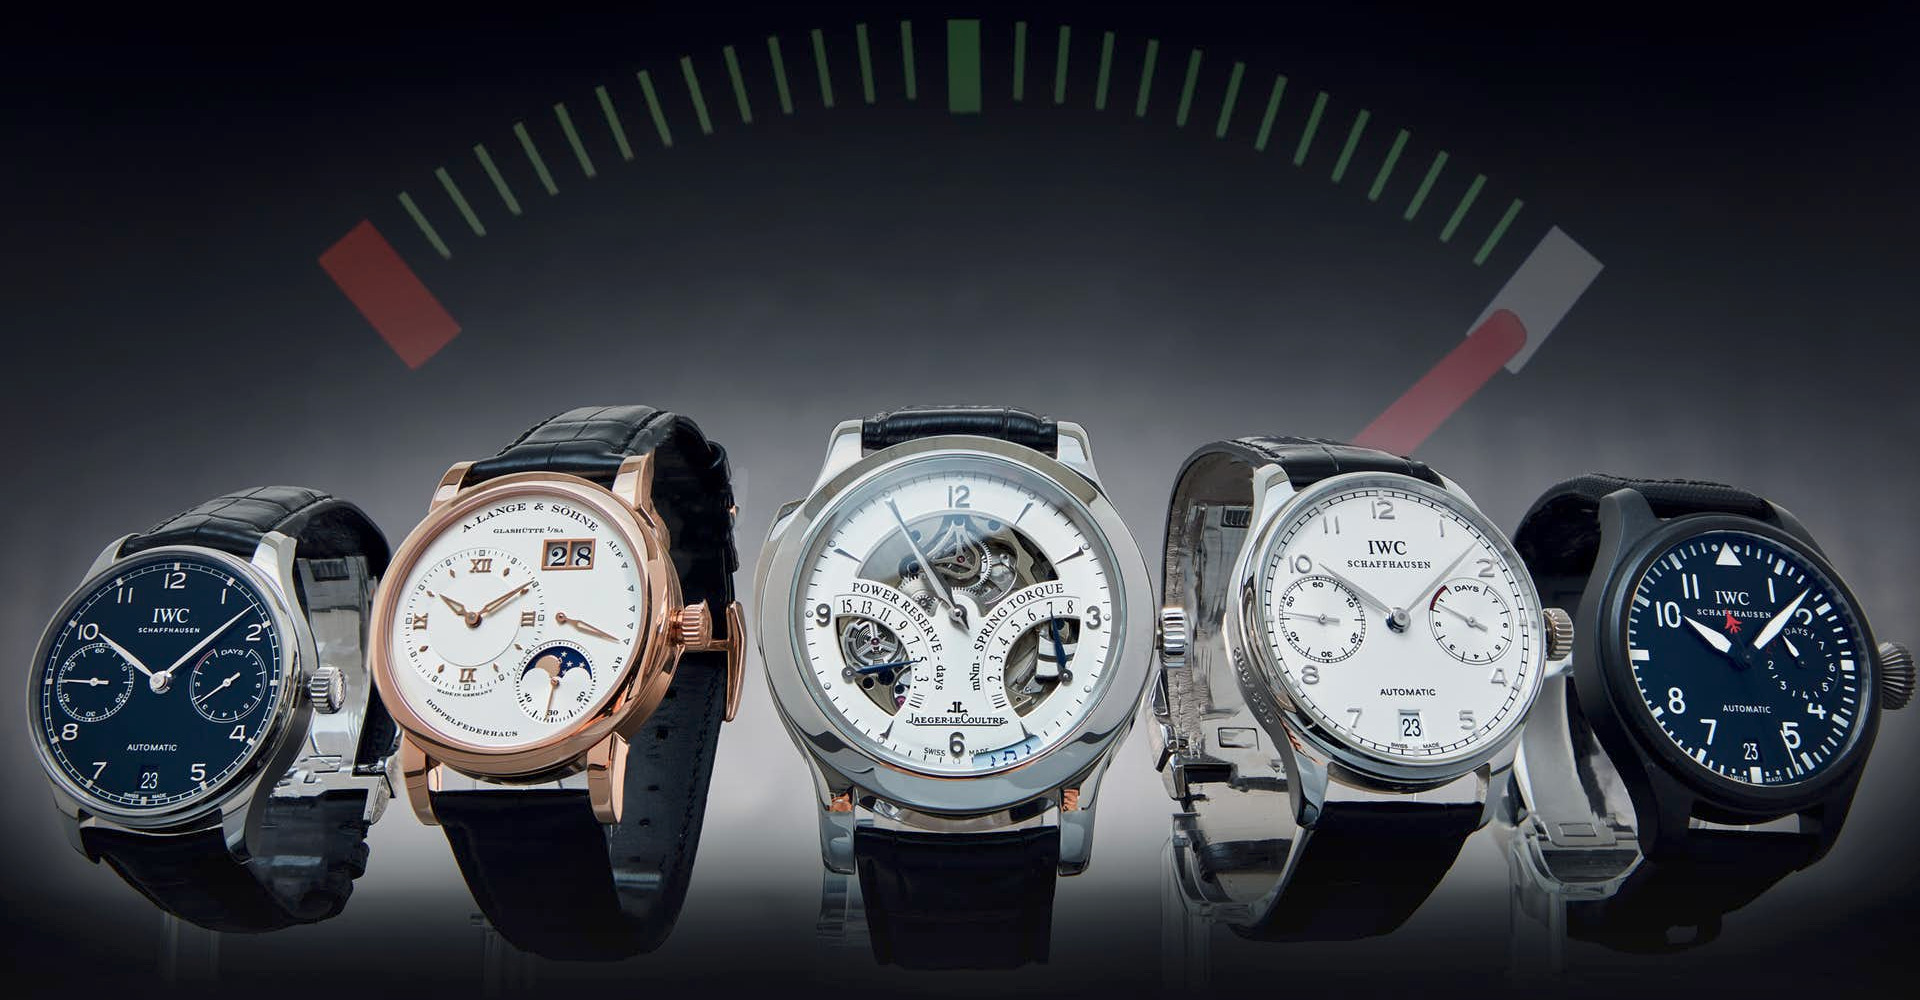 Power Reserve Watches: All You Need To Know